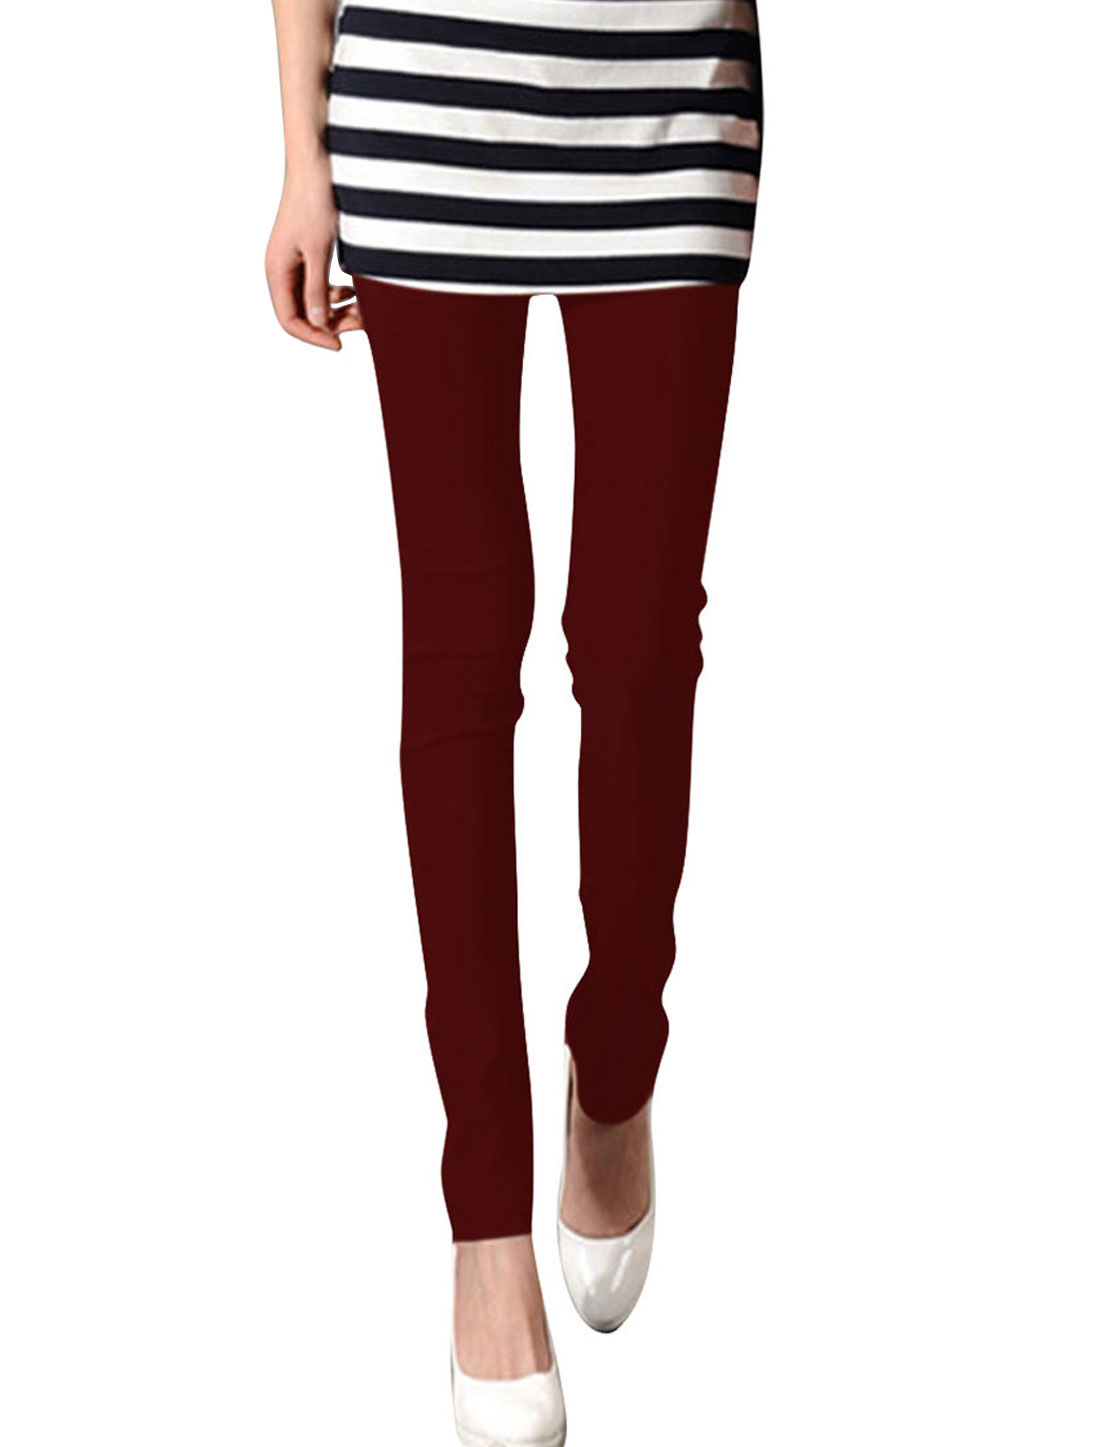 XS Burgundy Slim Fit Design Solid Color Form-fitting Hip Tight Women Legging